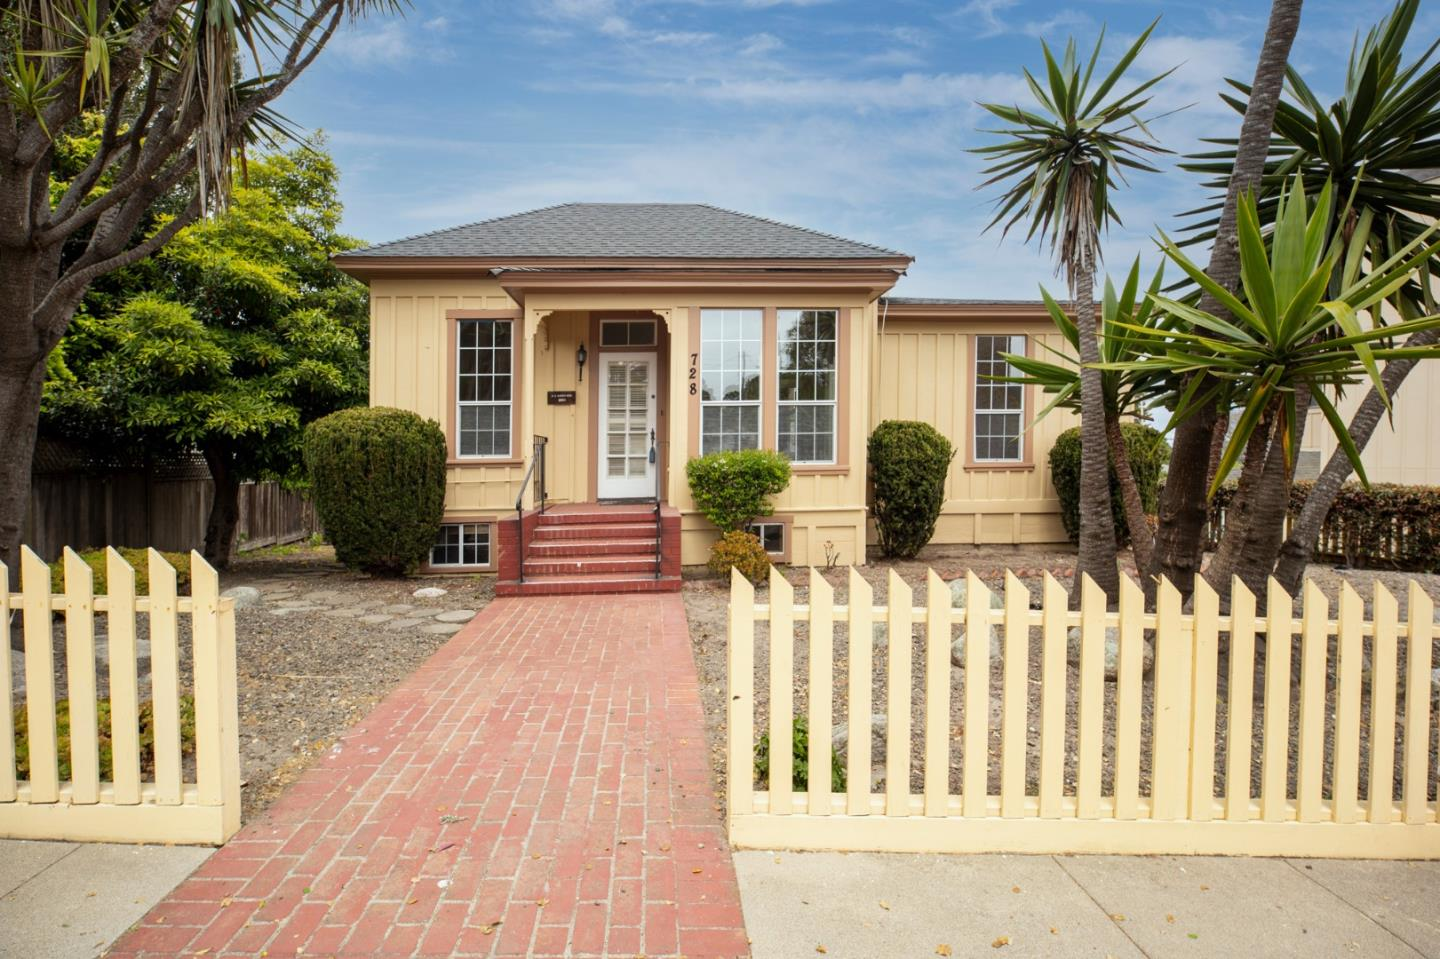 Property for sale at 728 Lighthouse Ave. AVE, Pacific Grove,  California 93950